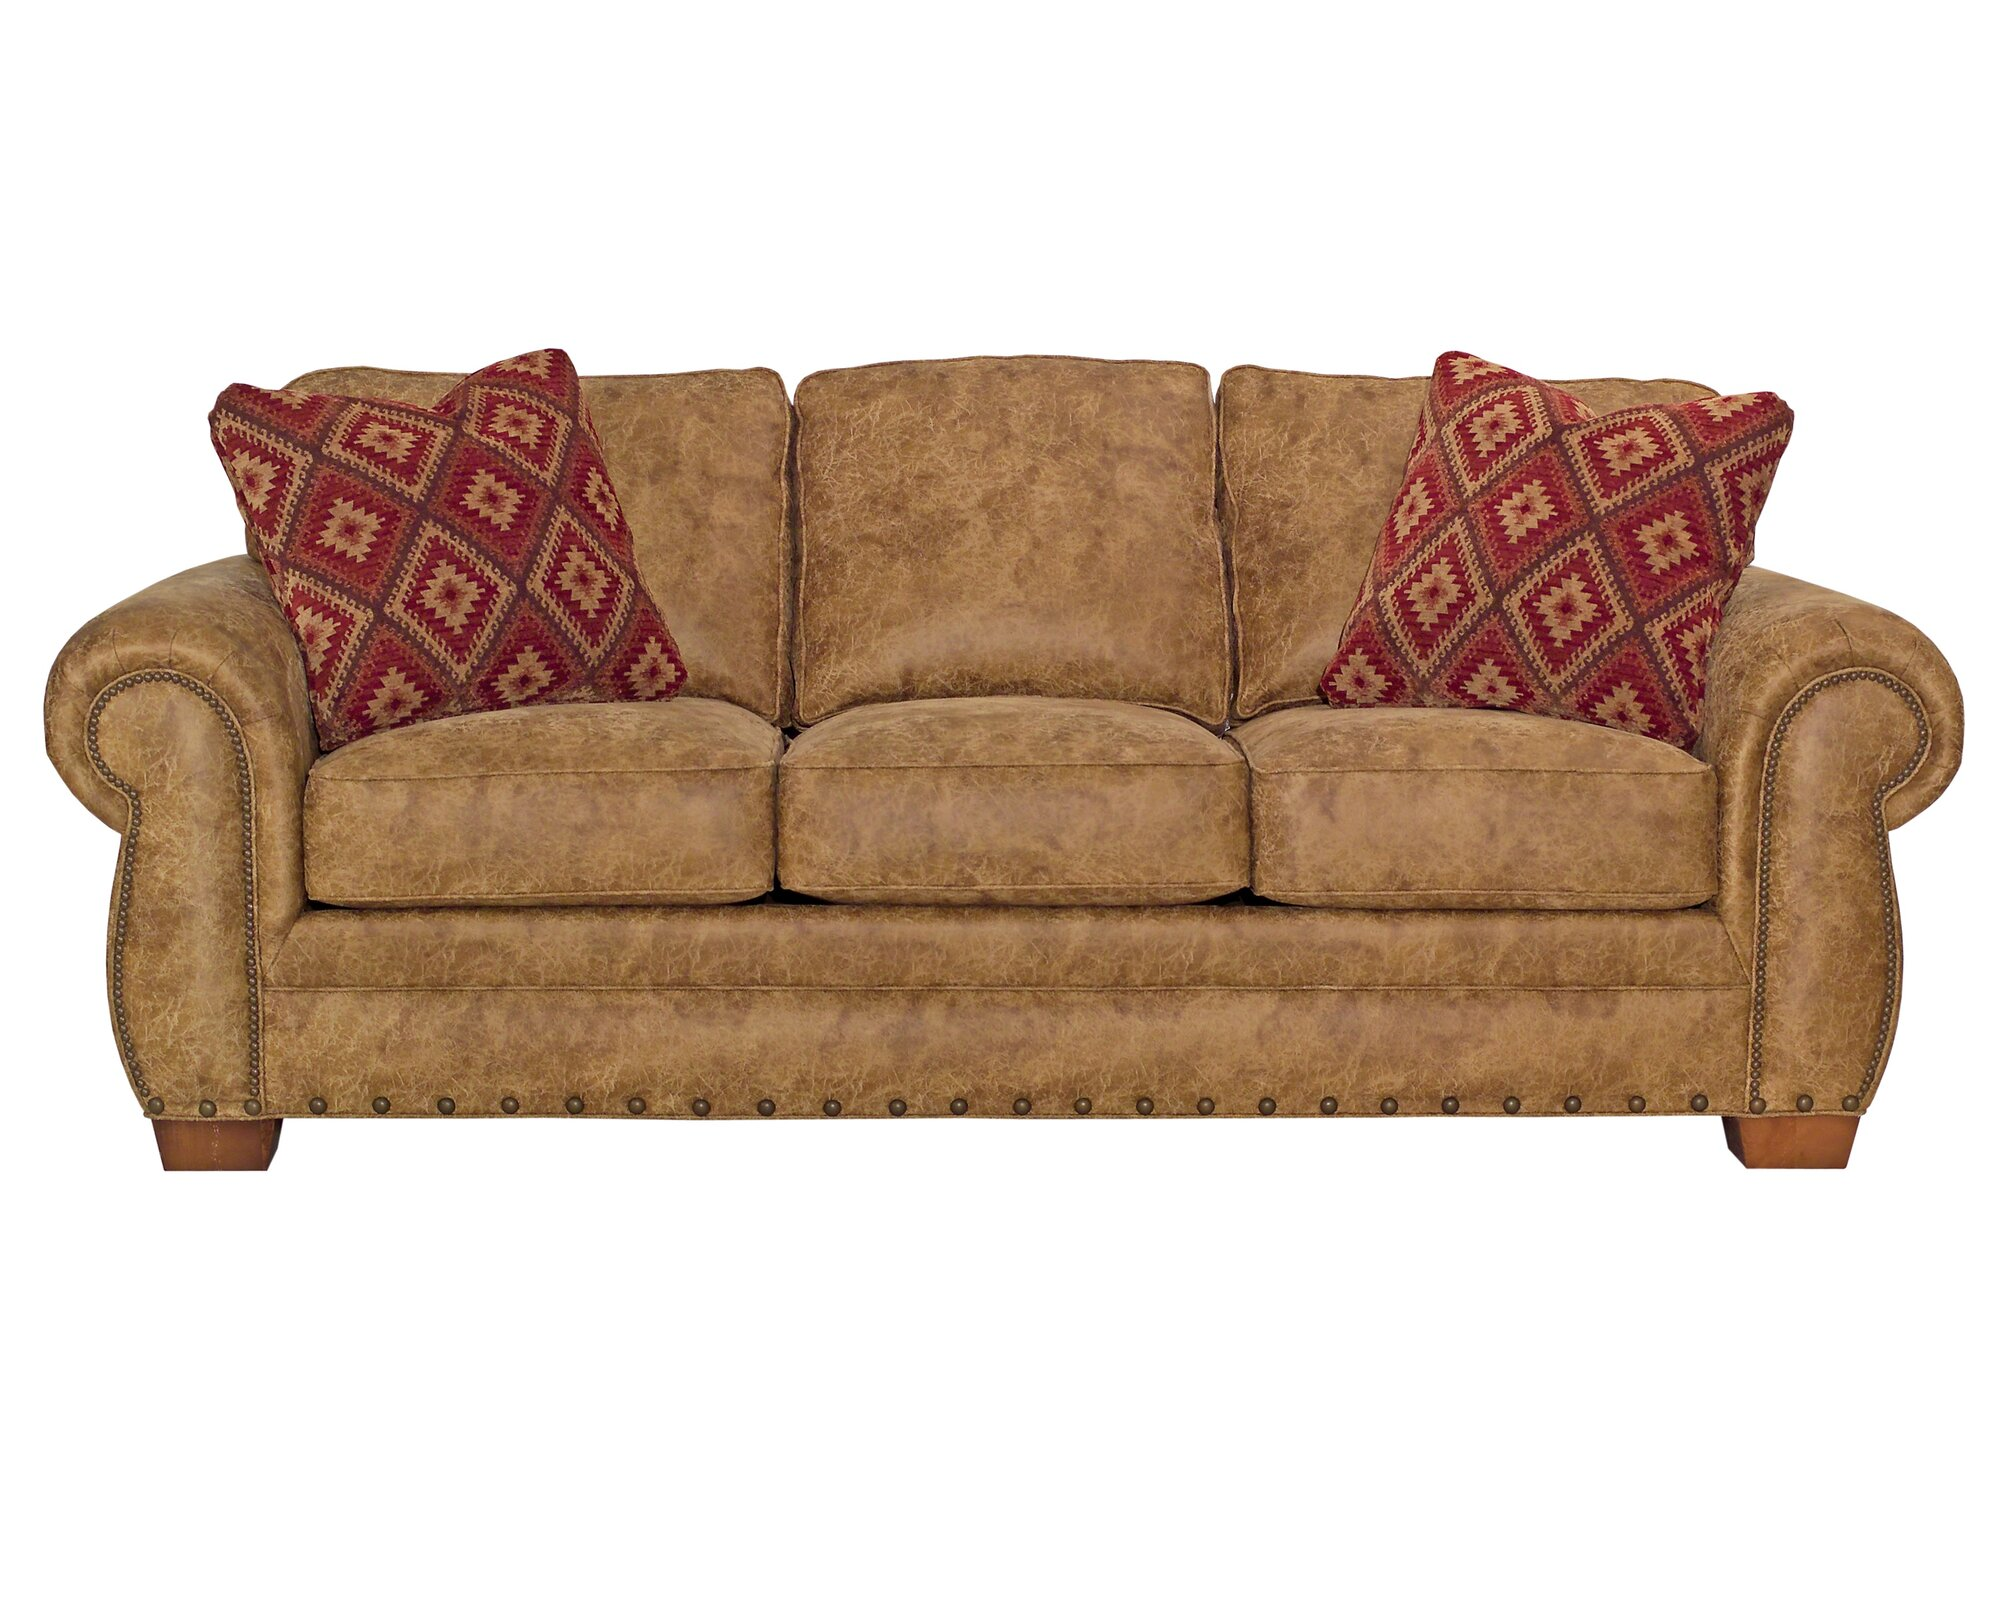 Broyhill cambridge sleeper sofa 28 images living room for Broyhill furniture